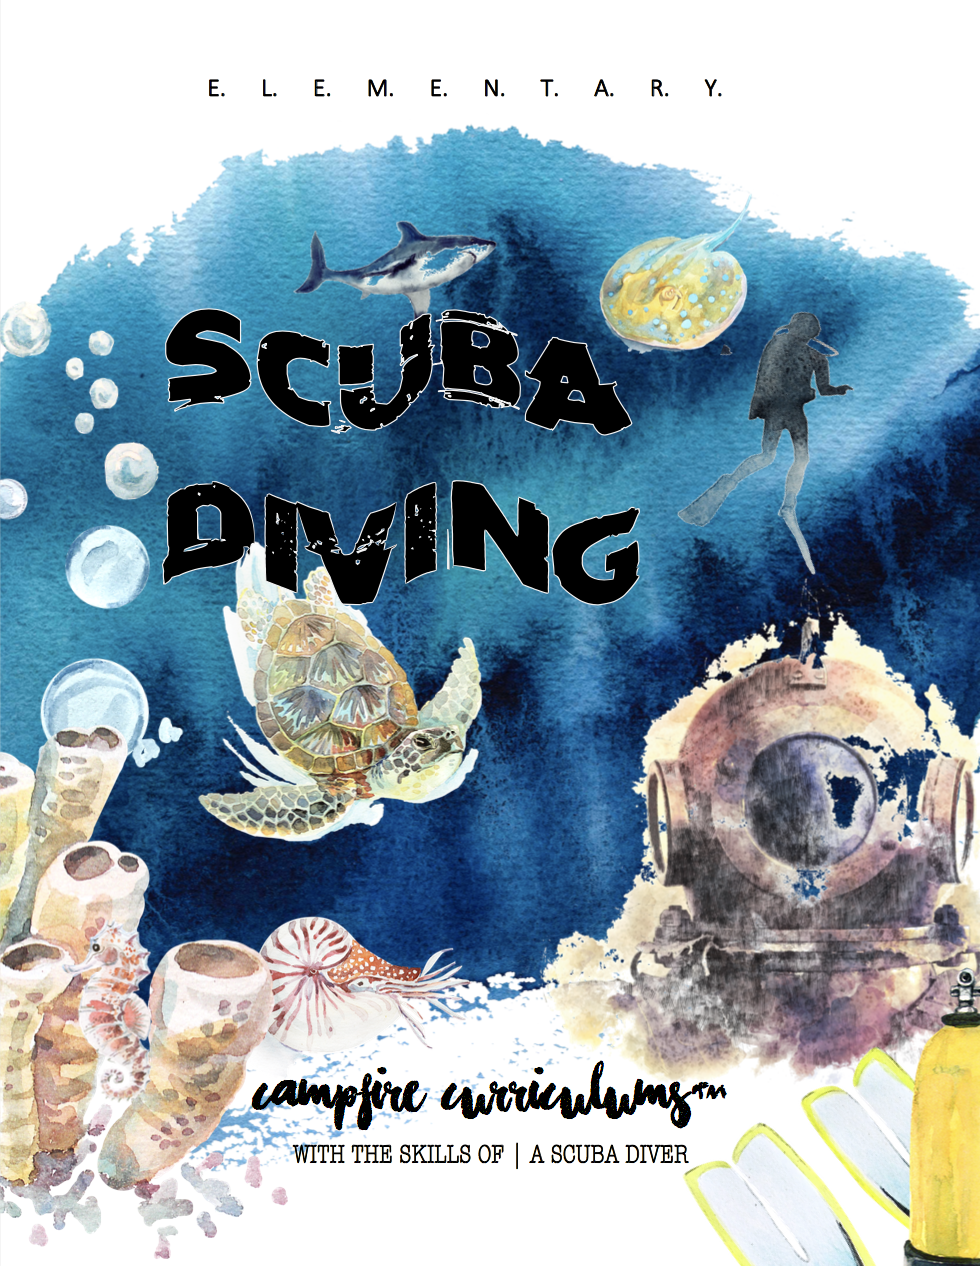 With the Skills of | A Scuba Diver (COMING SOON!)